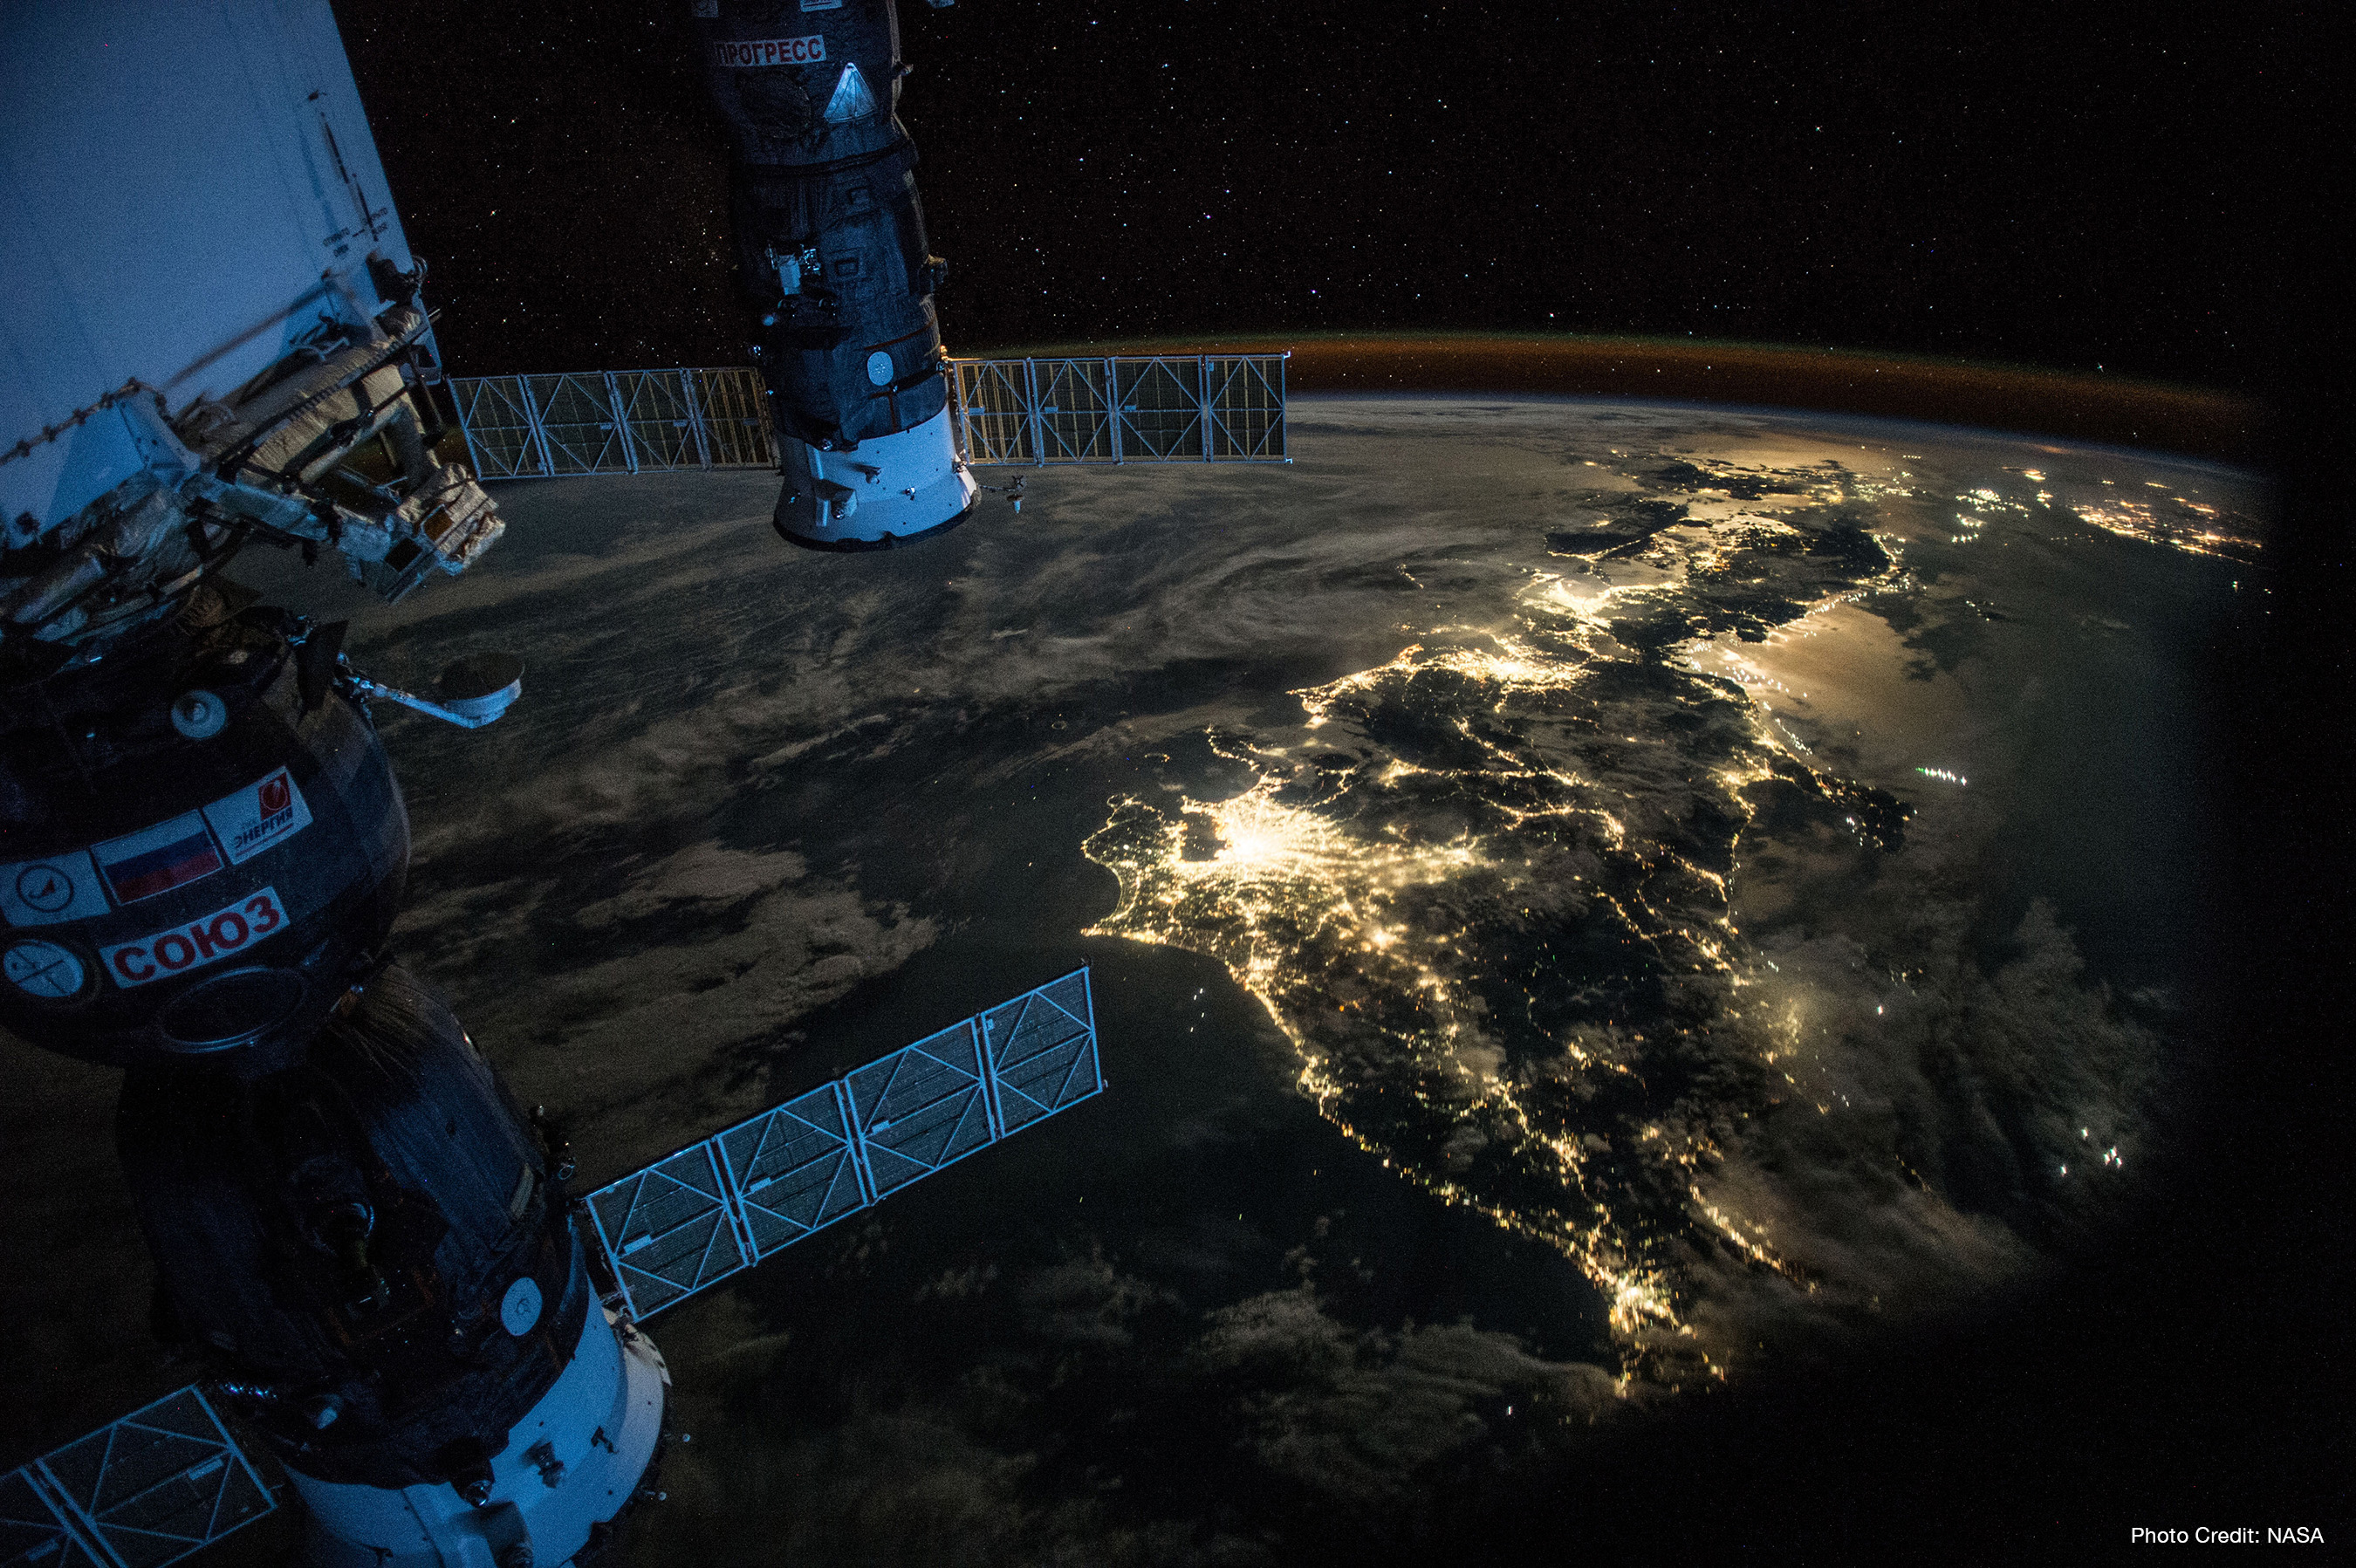 Night Earth observation of Japan taken by Expedition 44 crew member Scott Kelly. Photo credit: NASA.